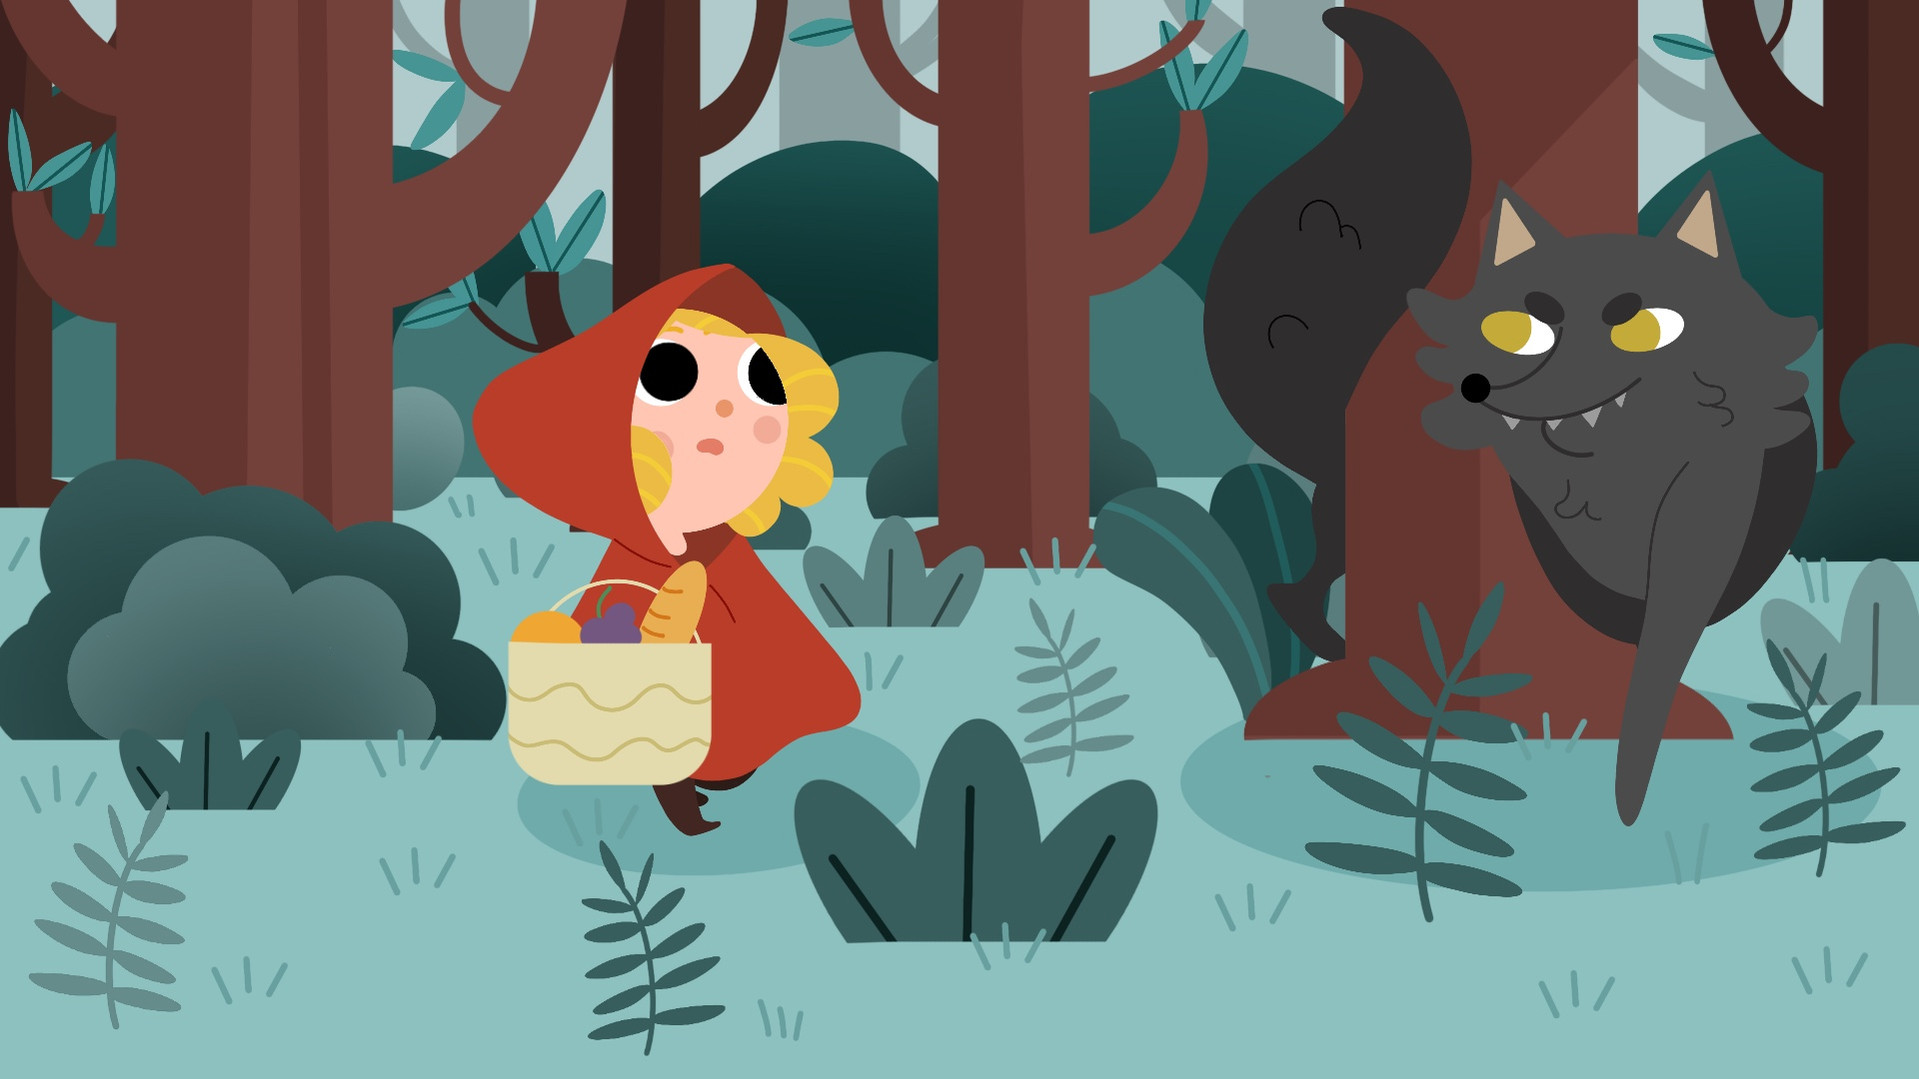 Little_Red_Riding_Hood_03.jpg